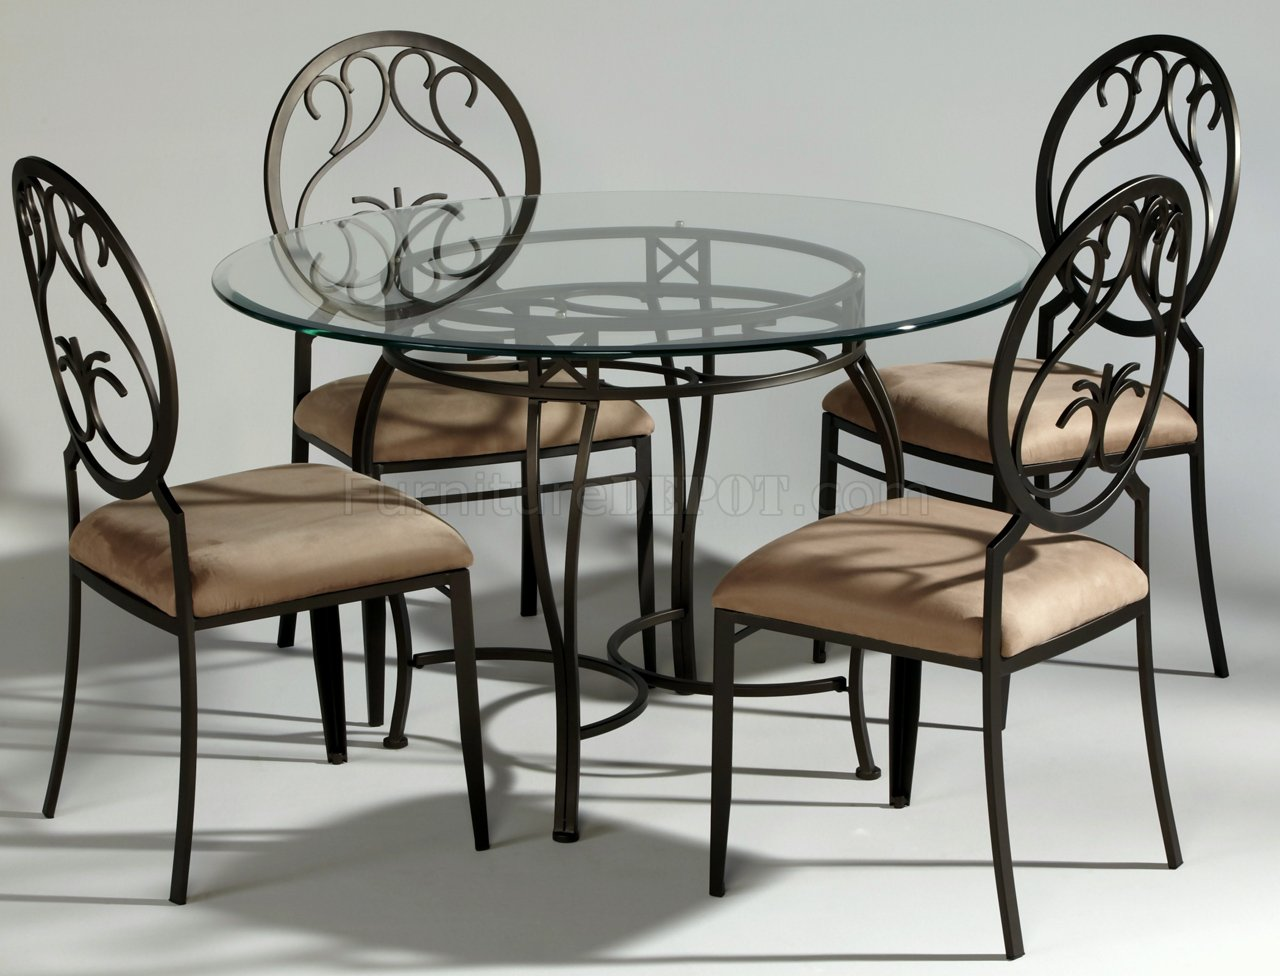 steel chair dining table king throne chairs for rent dark champagne metal modern w optional